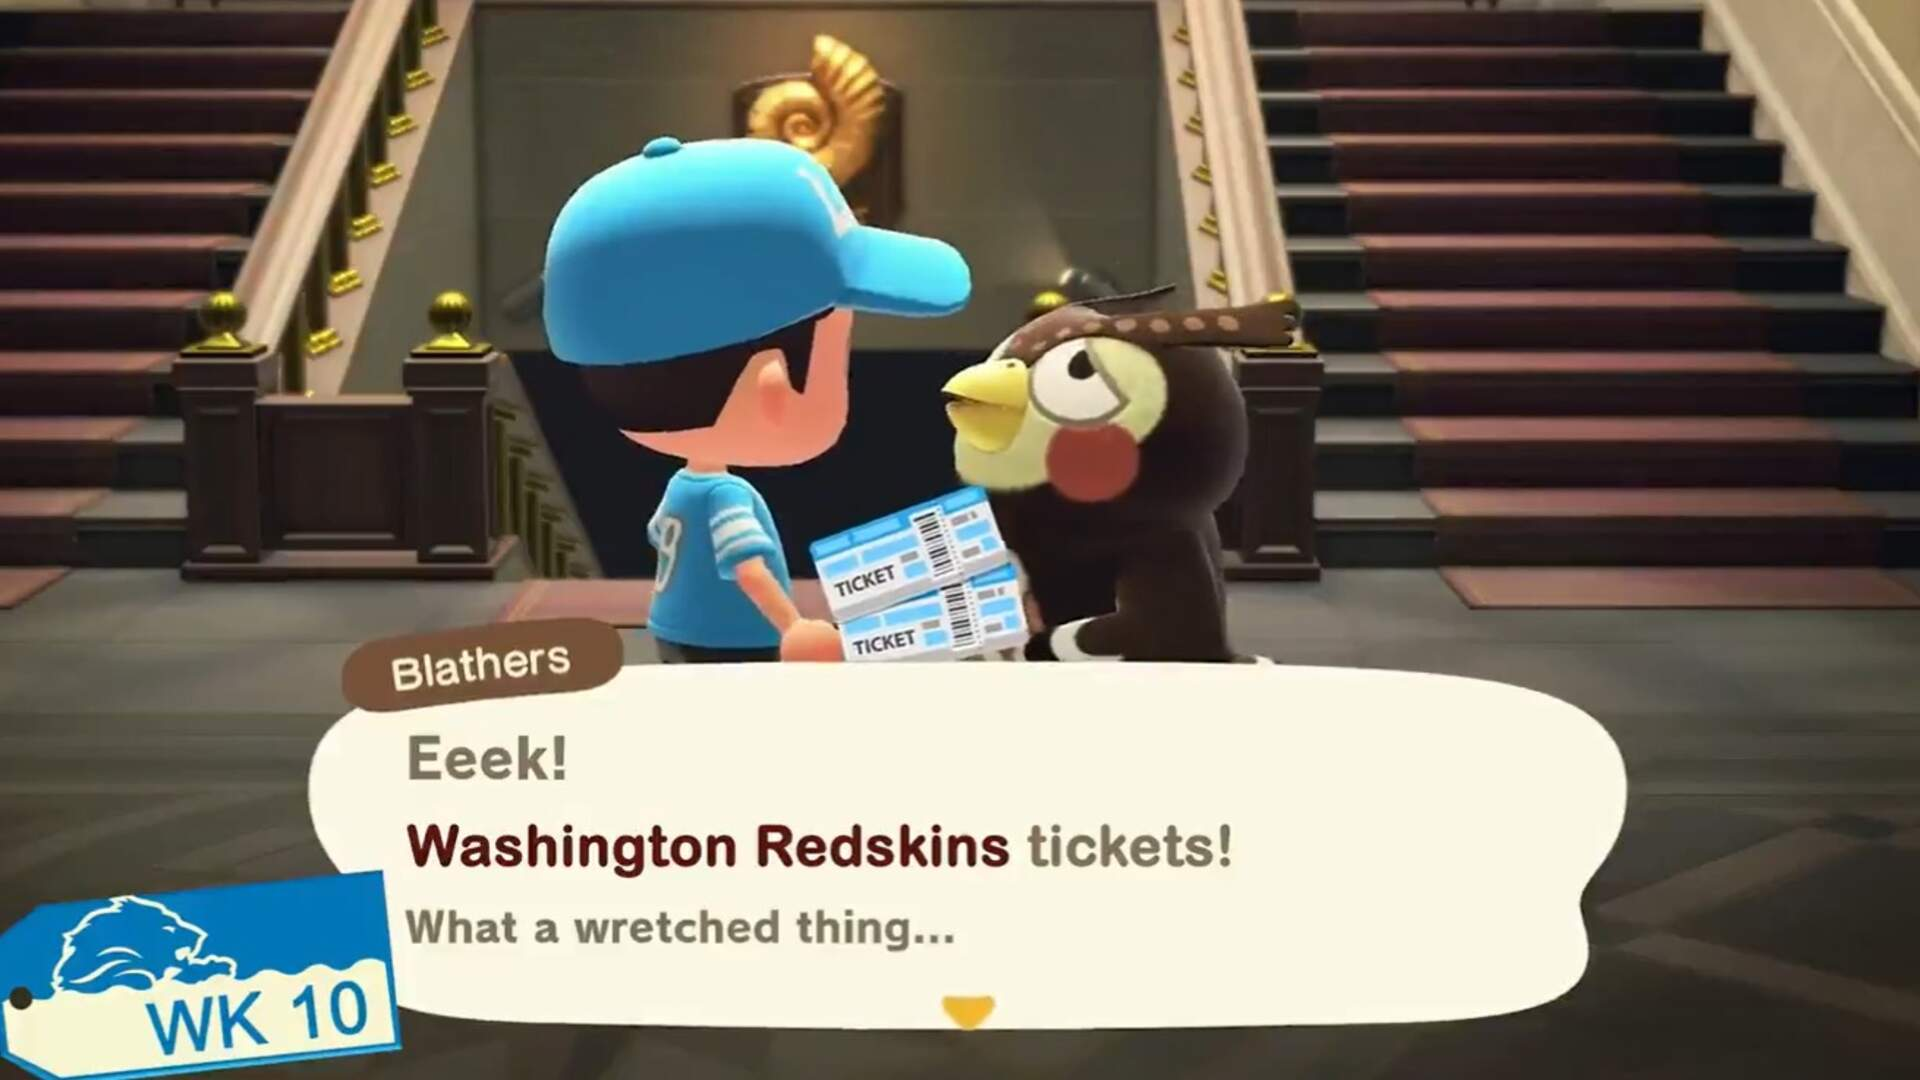 Even Blathers is Making Fun of the Washington NFL Team's Inability to Sell Tickets Now